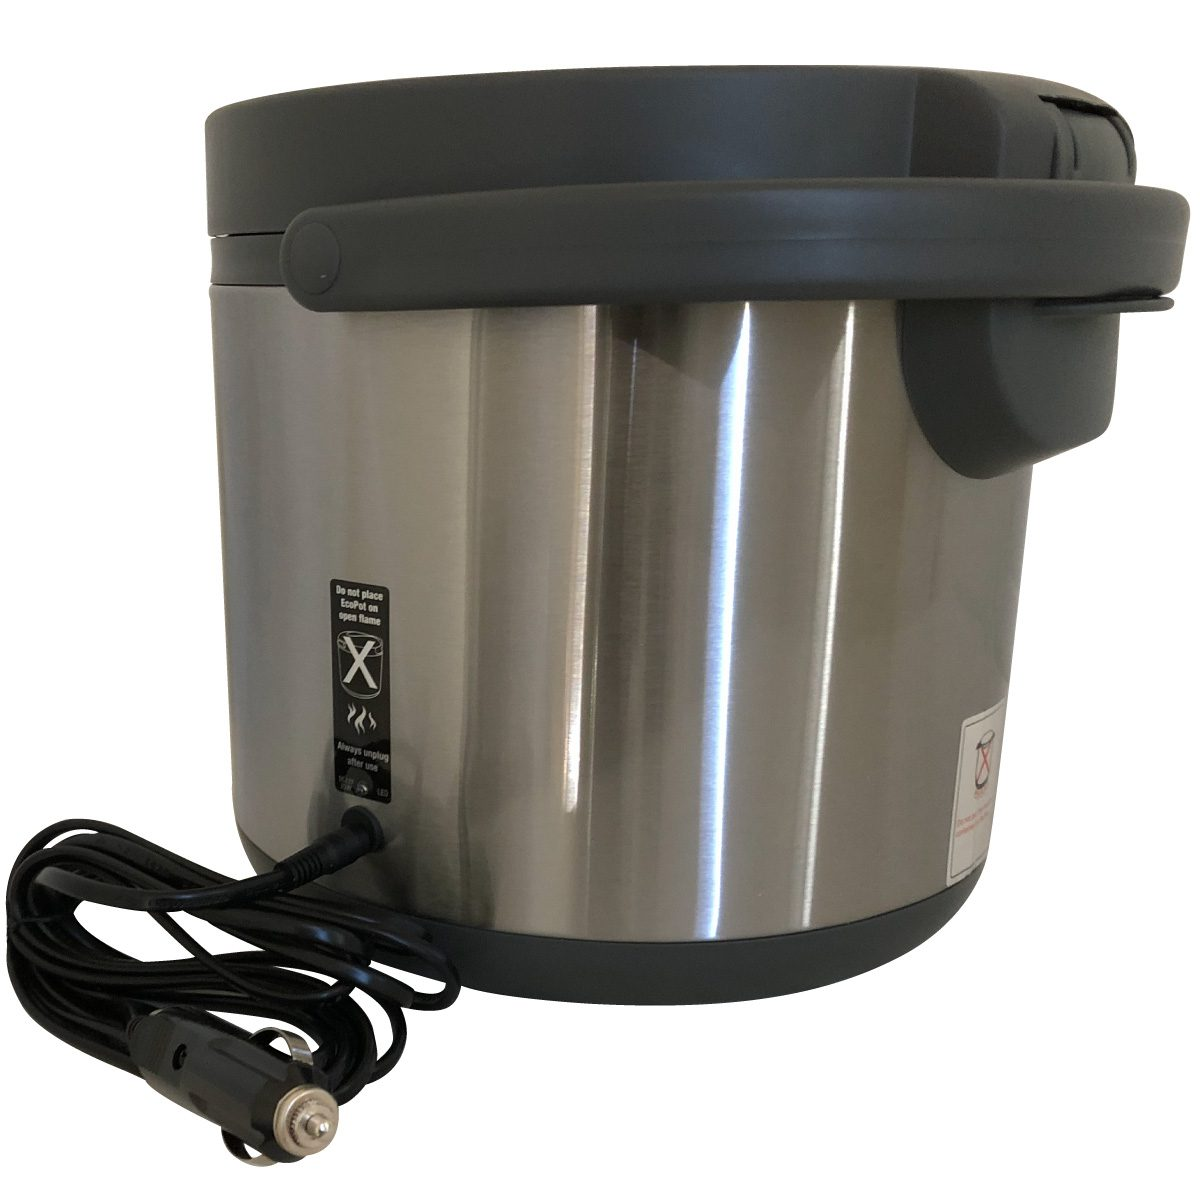 Ecopot 24/7 with car adapter